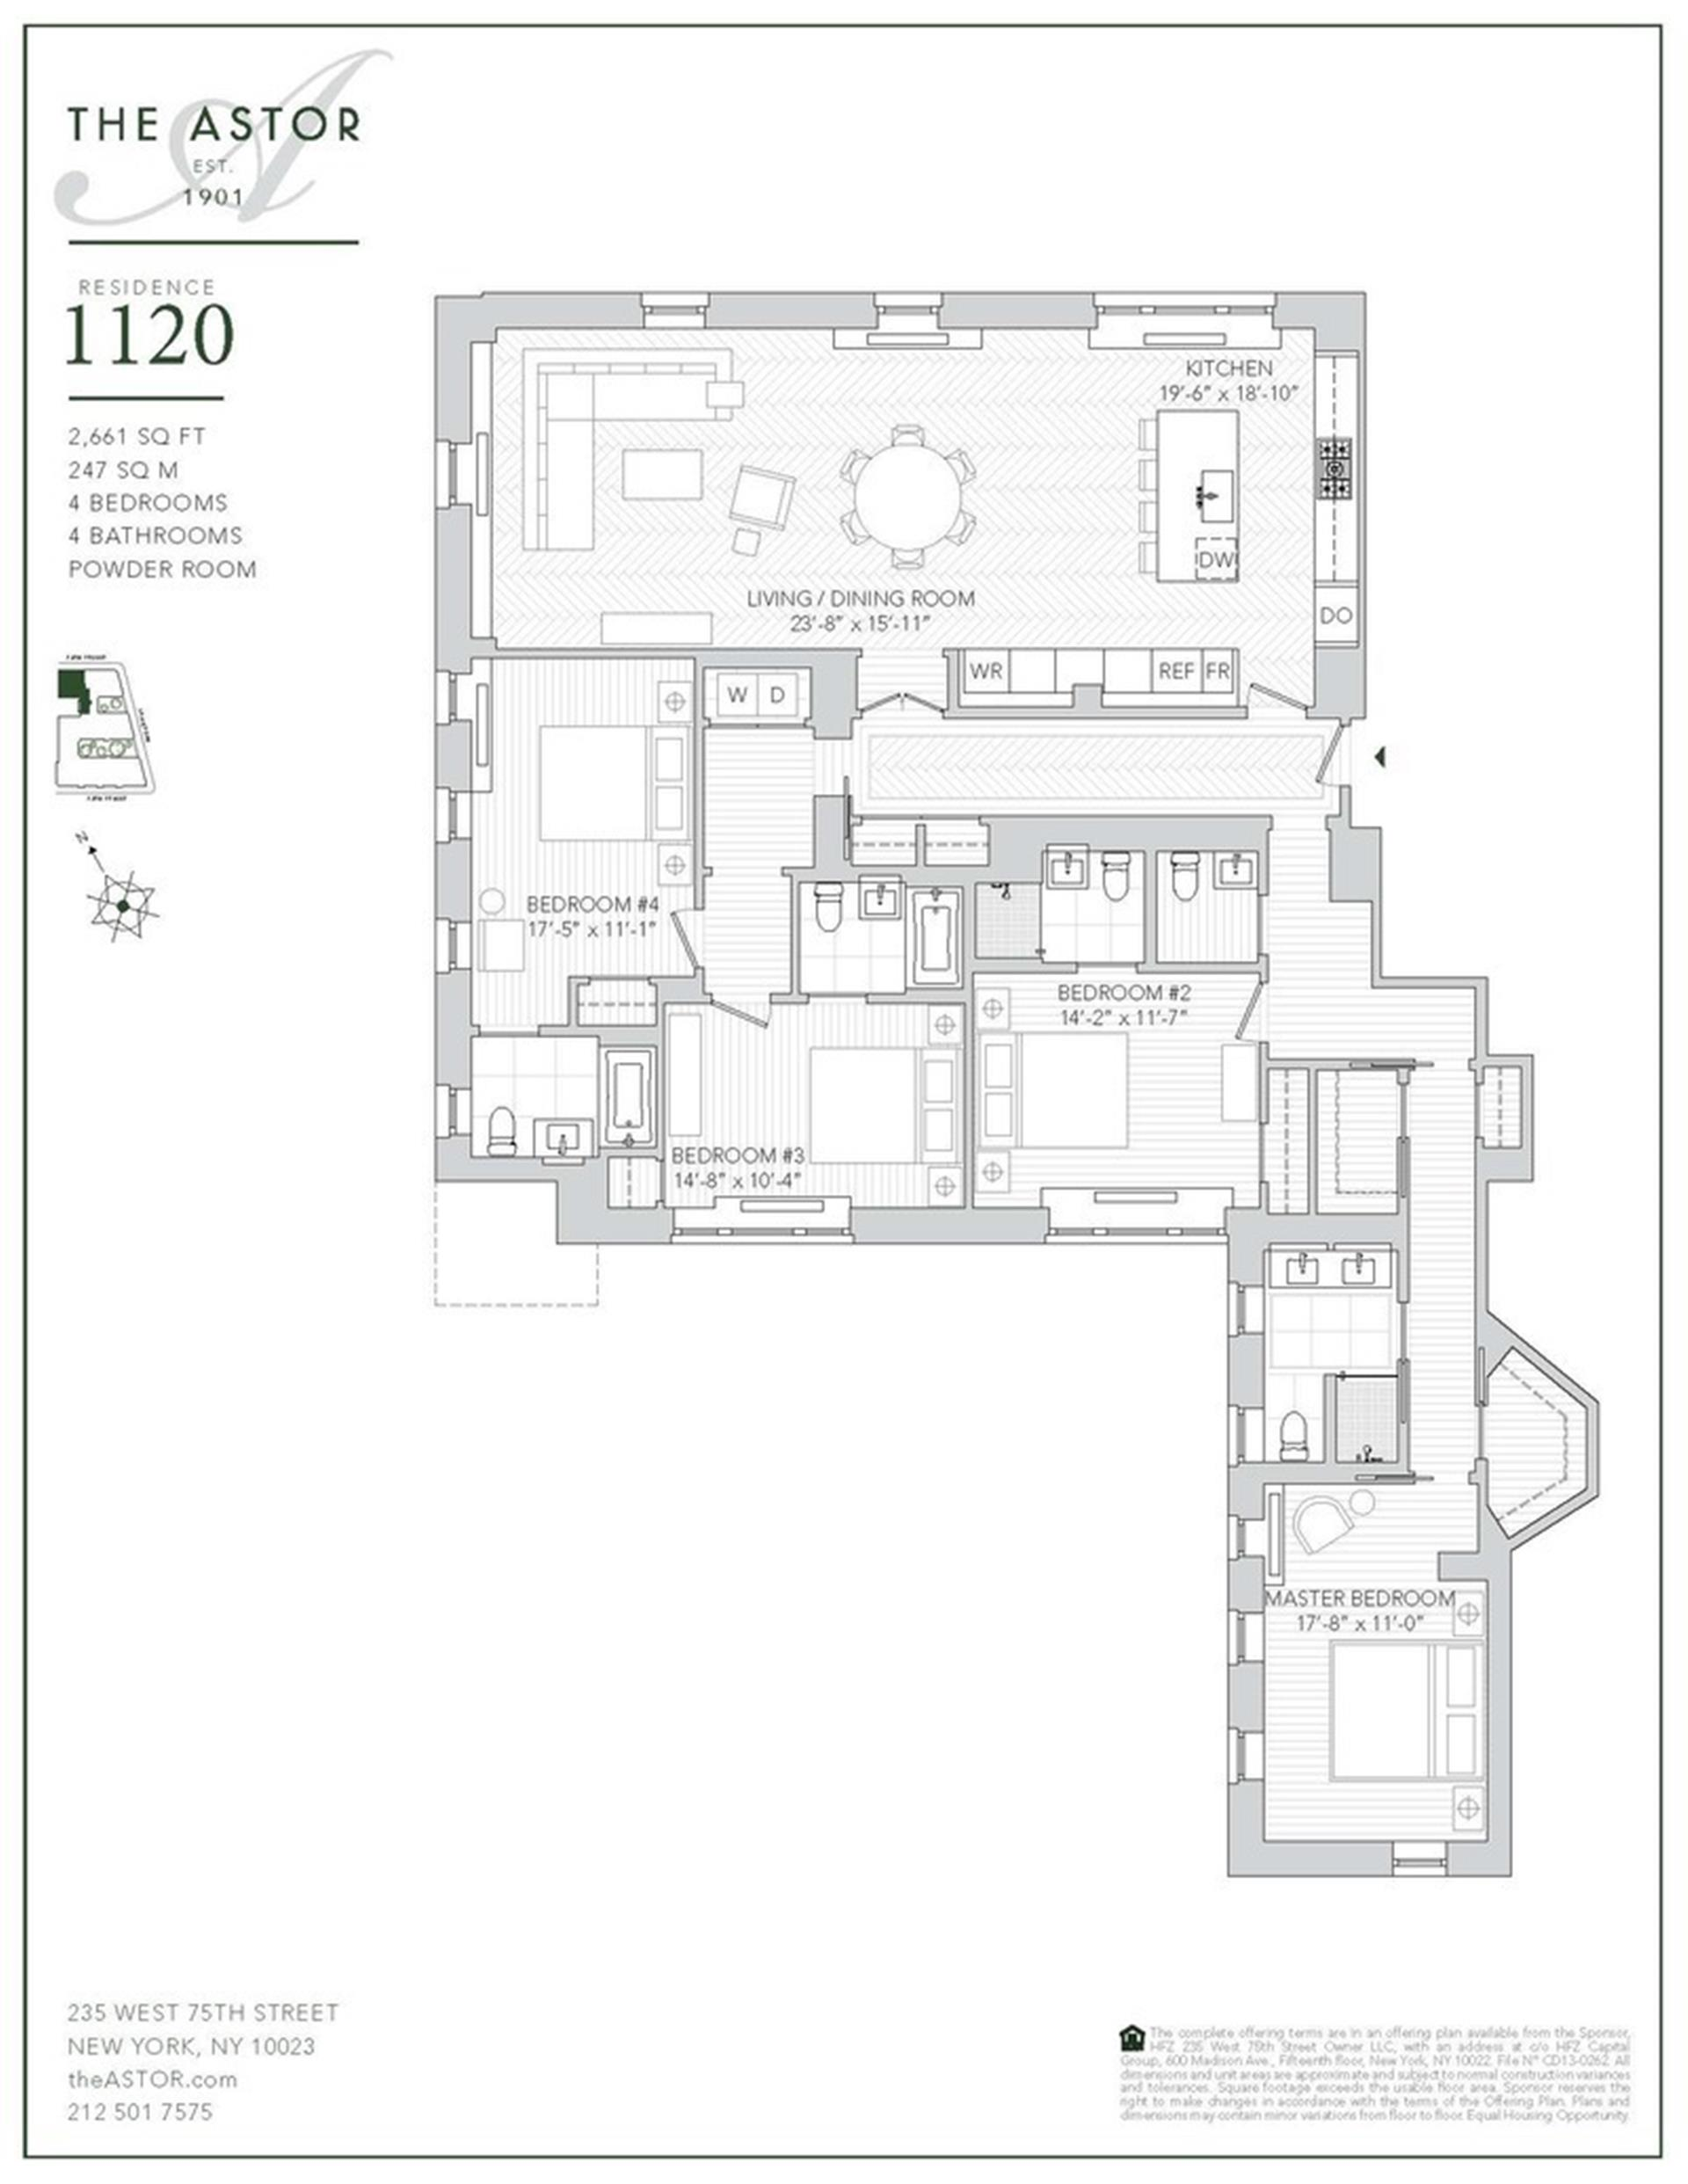 Floor plan of The Astor, 235 West 75th St, 1120 - Upper West Side, New York